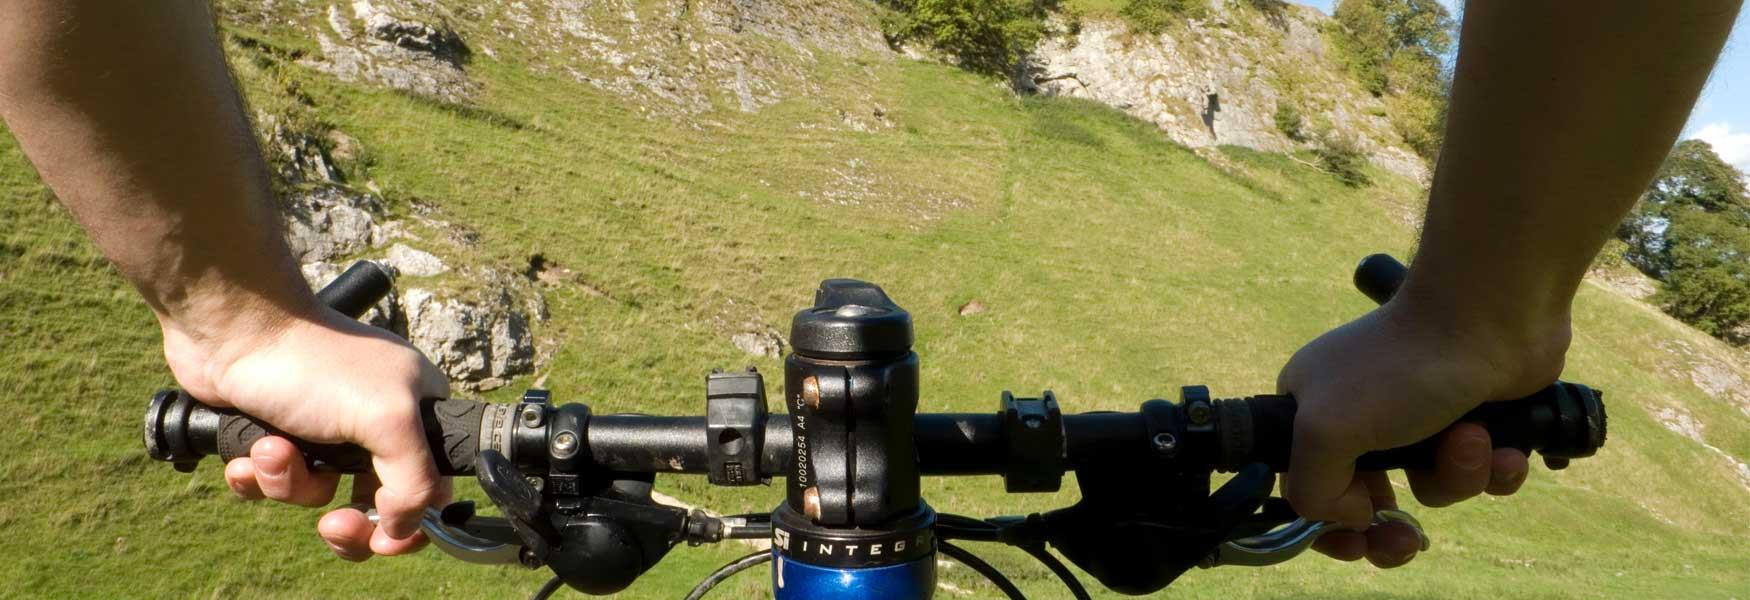 Go on a two-wheeled adventure!